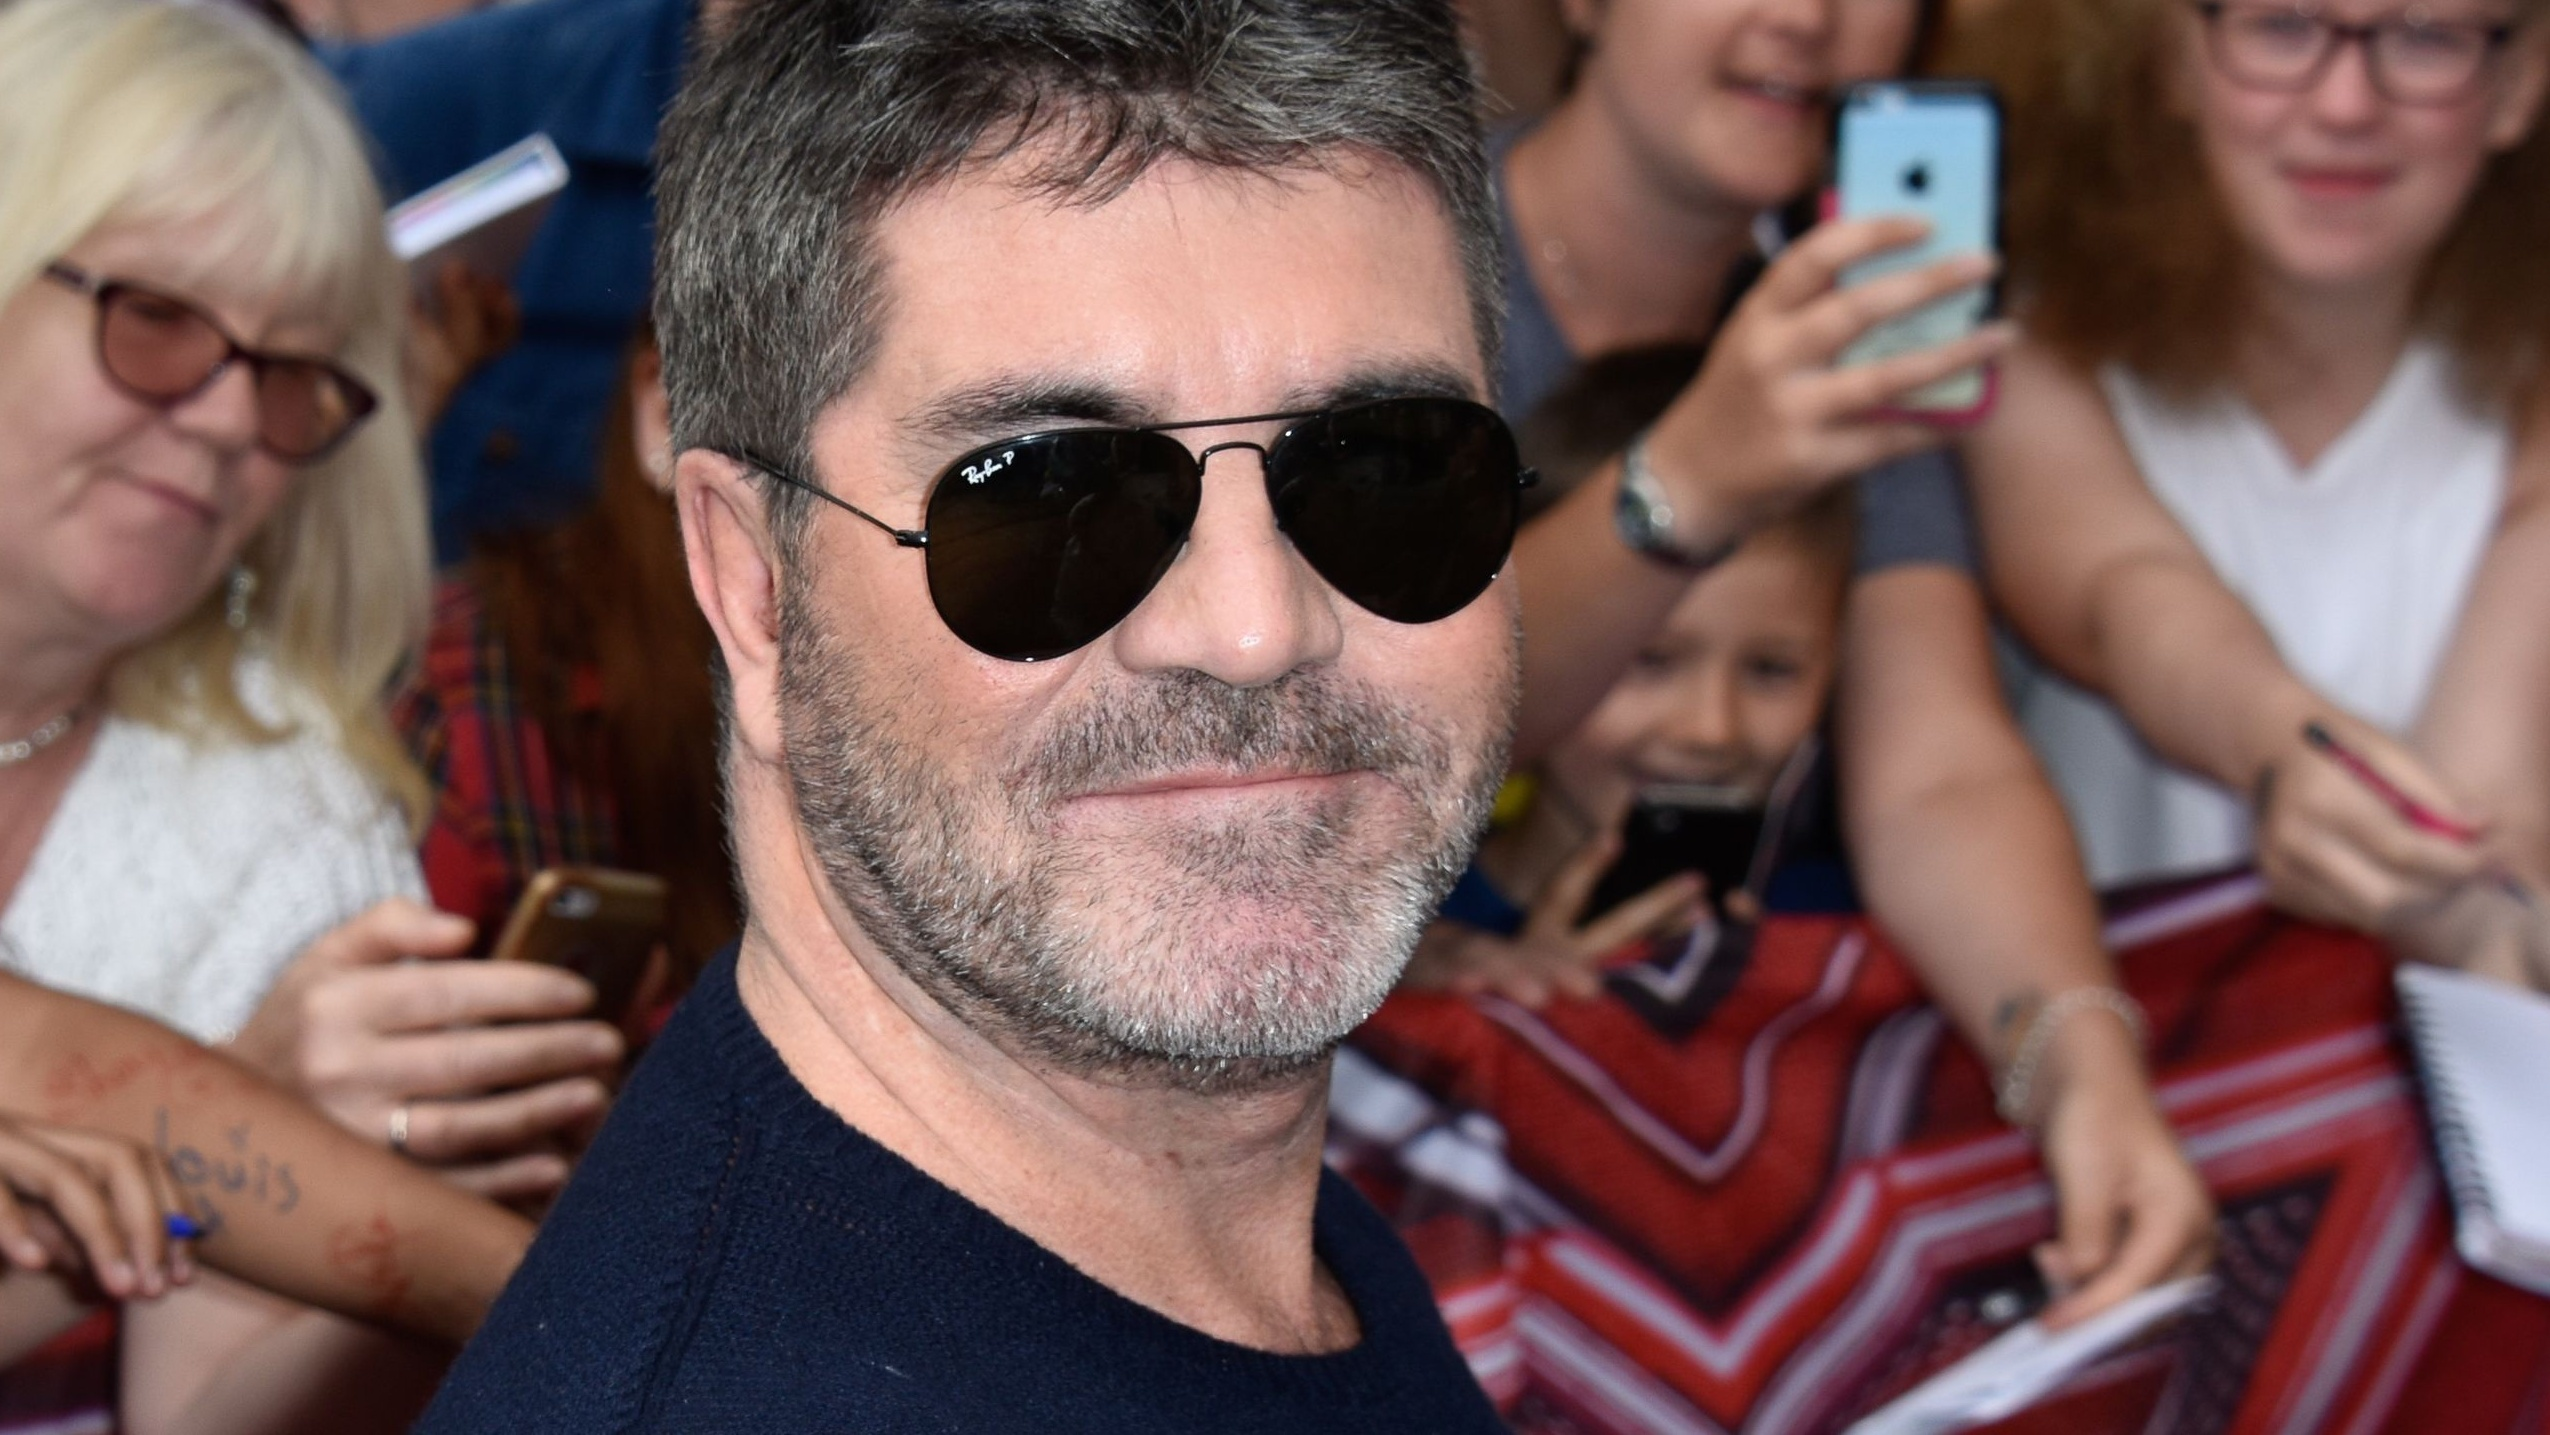 The X Factor used to attract over 17 million for a series finale